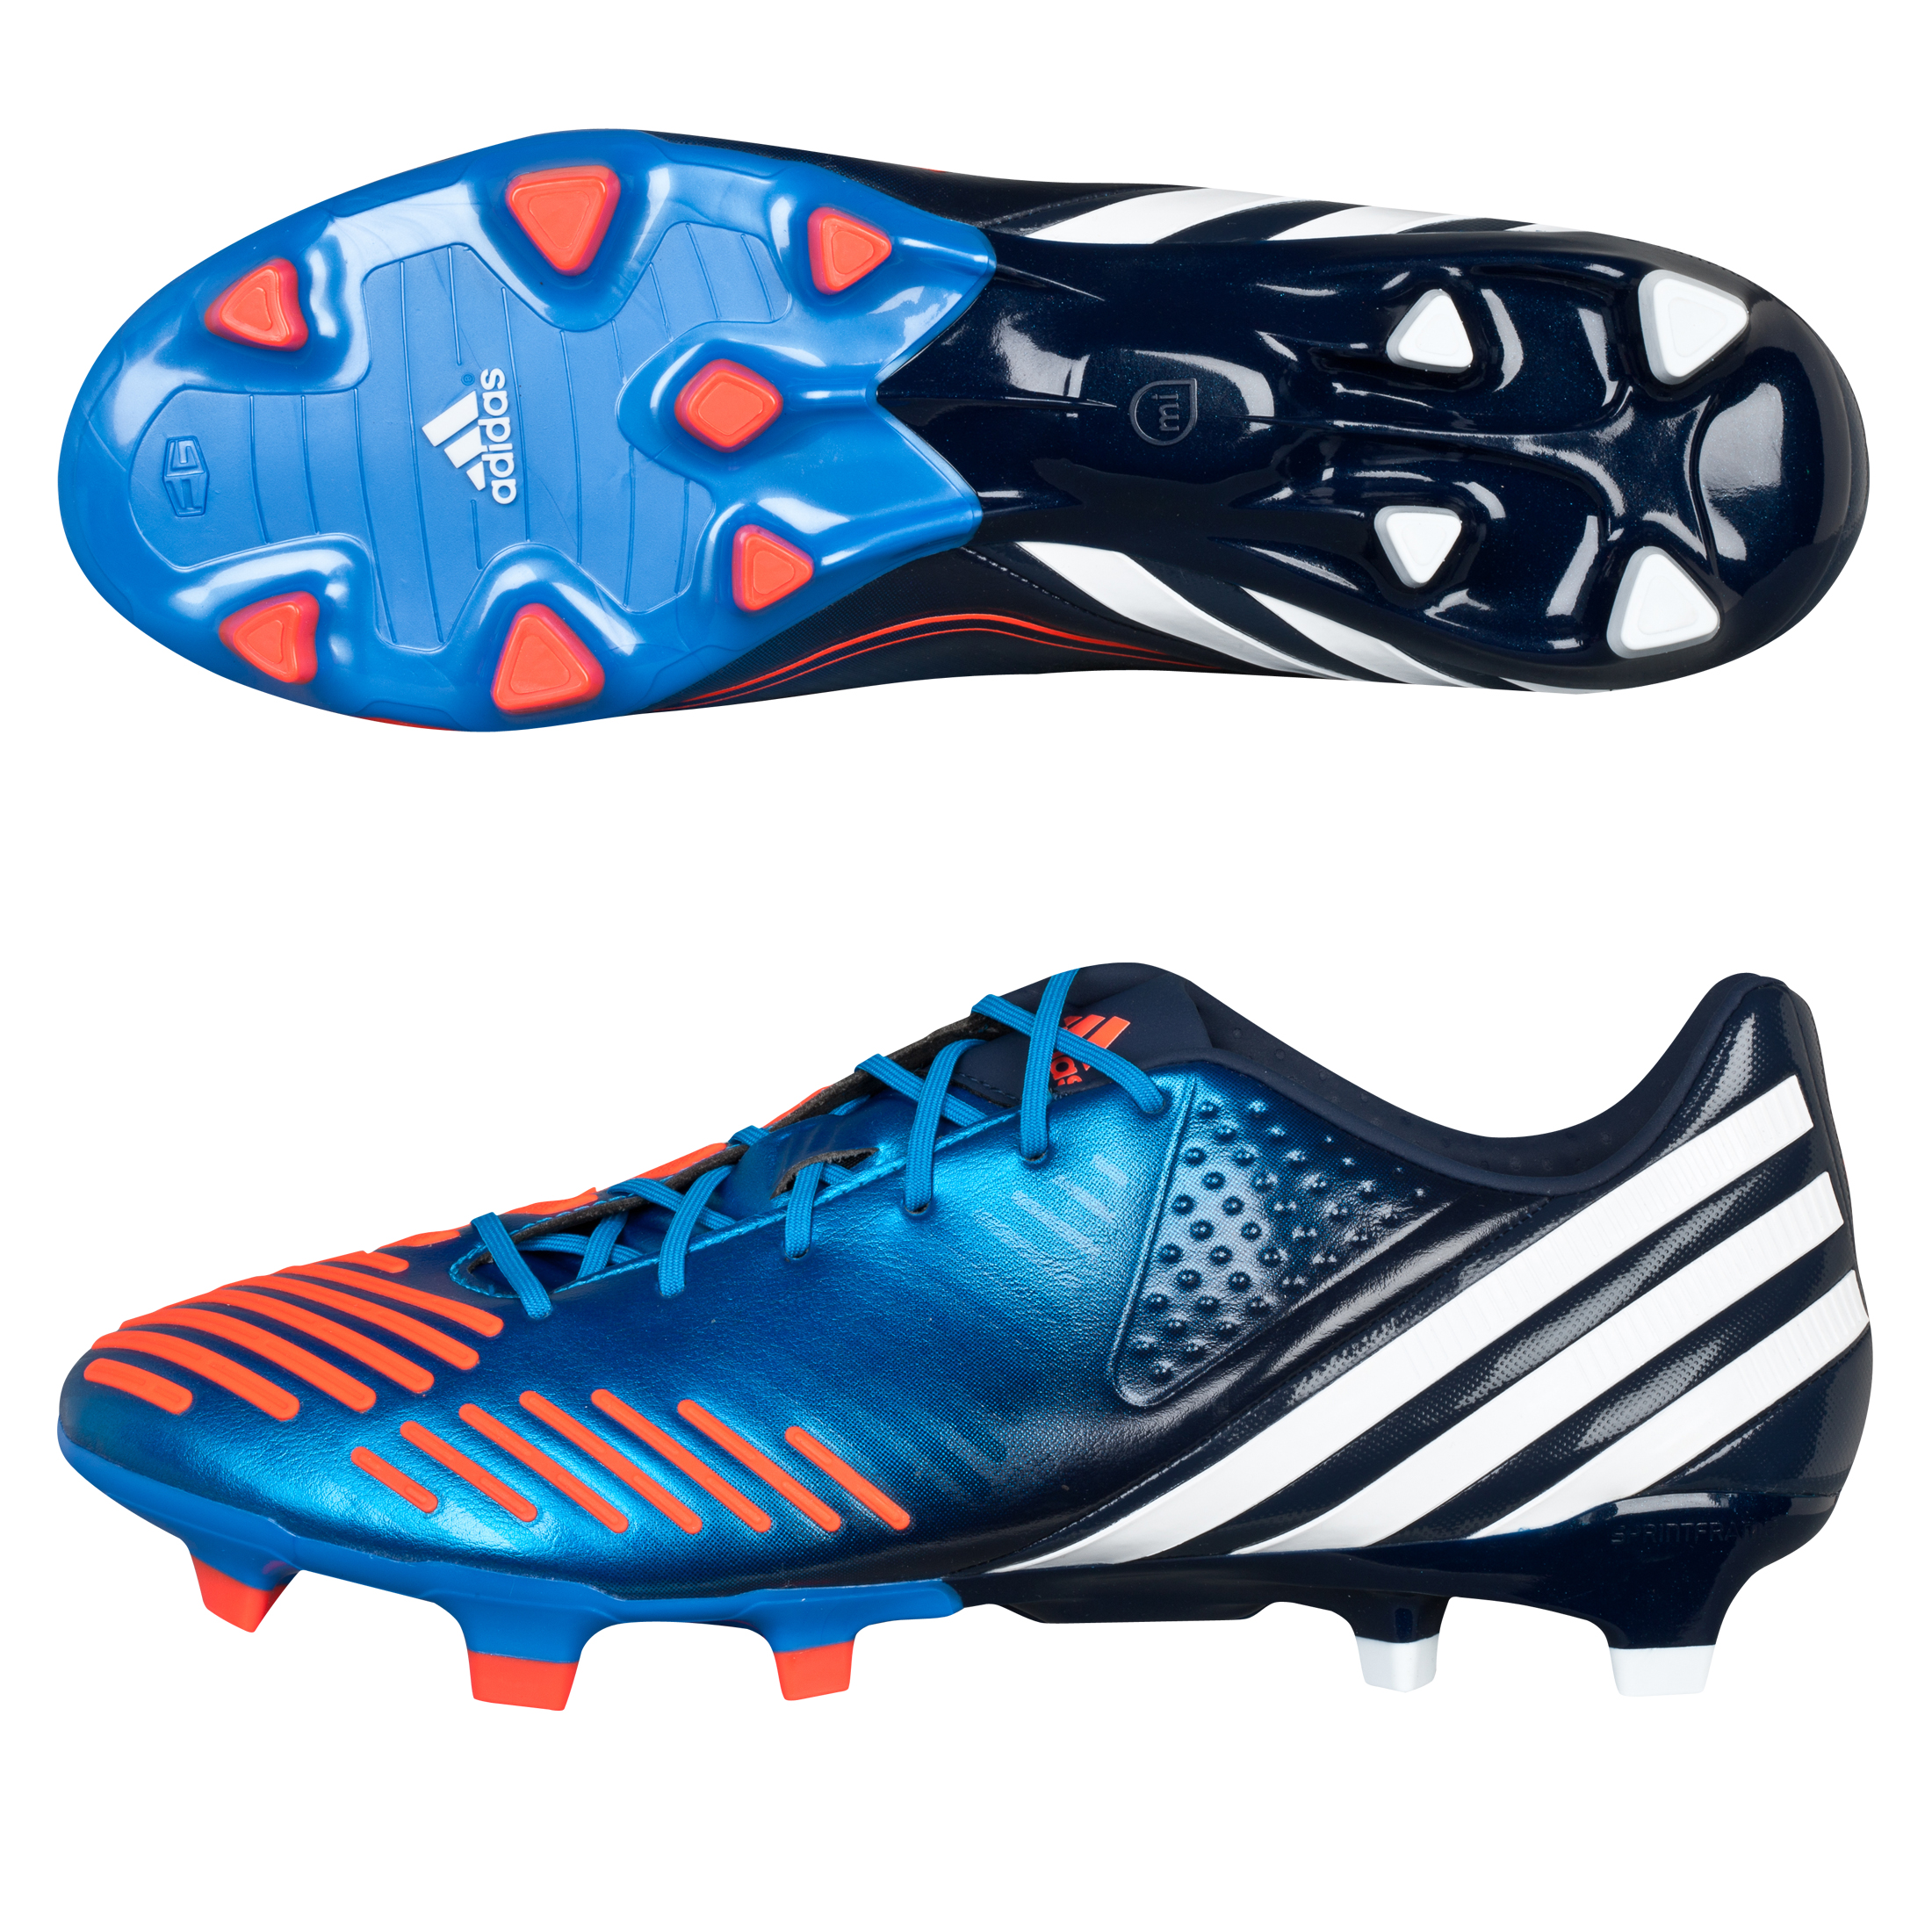 Predator LZ TRX FG Bright Blue/Running White/Infrared